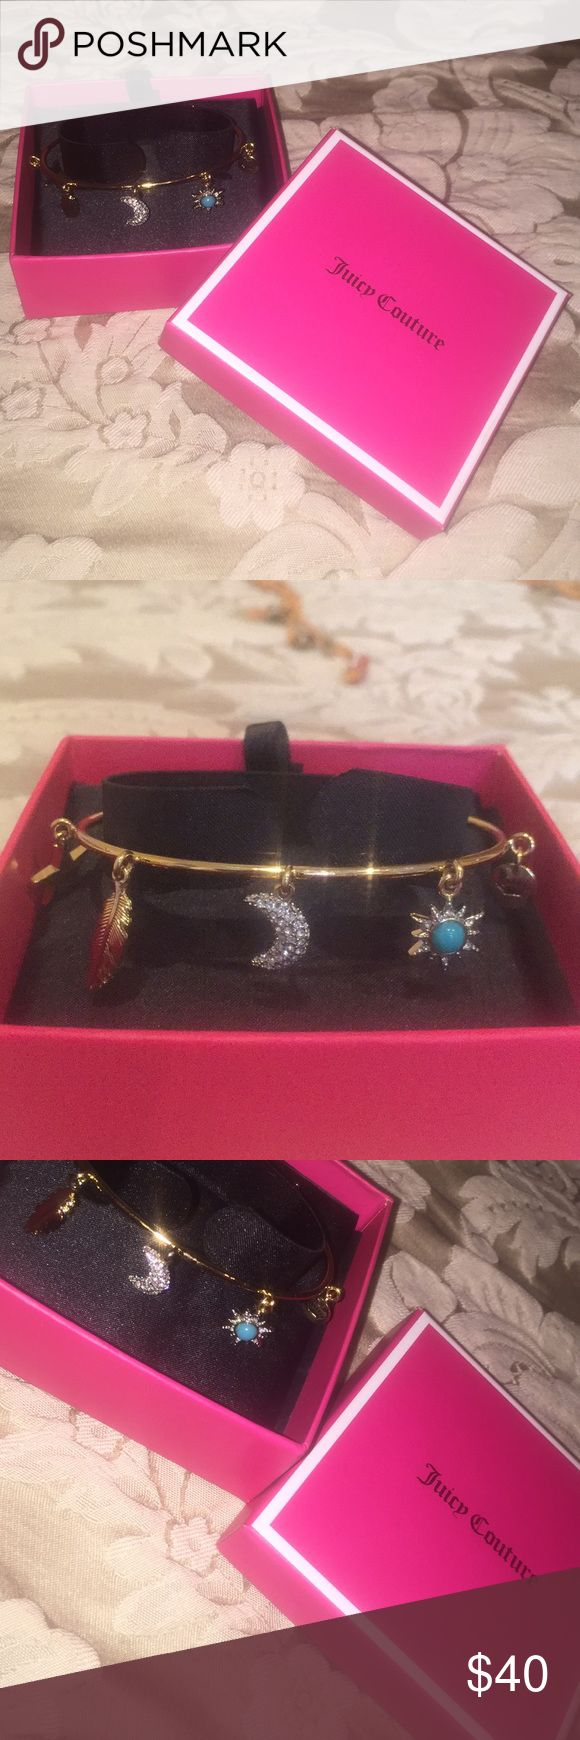 Juicy Couture Charm Bracelet Beautiful Juicy Couture Charm Bracelet. It has never been worn and is new with tags. Such a gorgeous Bracelet. It reminds me of Pandora! It will come in the box that I bought it in! Juicy Couture Jewelry Bracelets